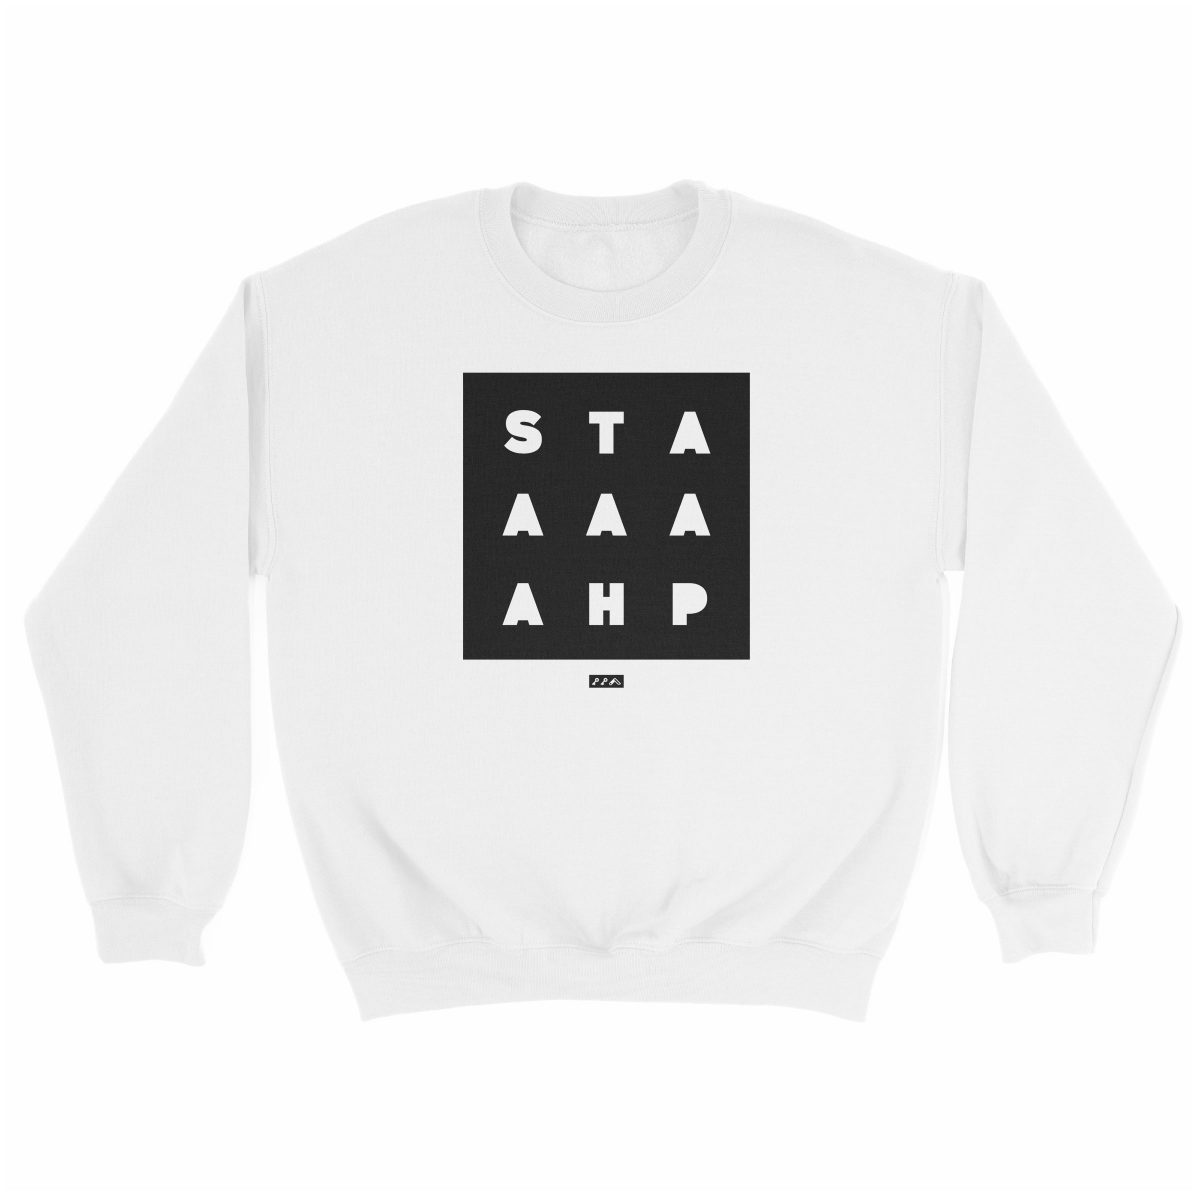 """STAAAAAHP"" funny philly slang sweatshirt in white"